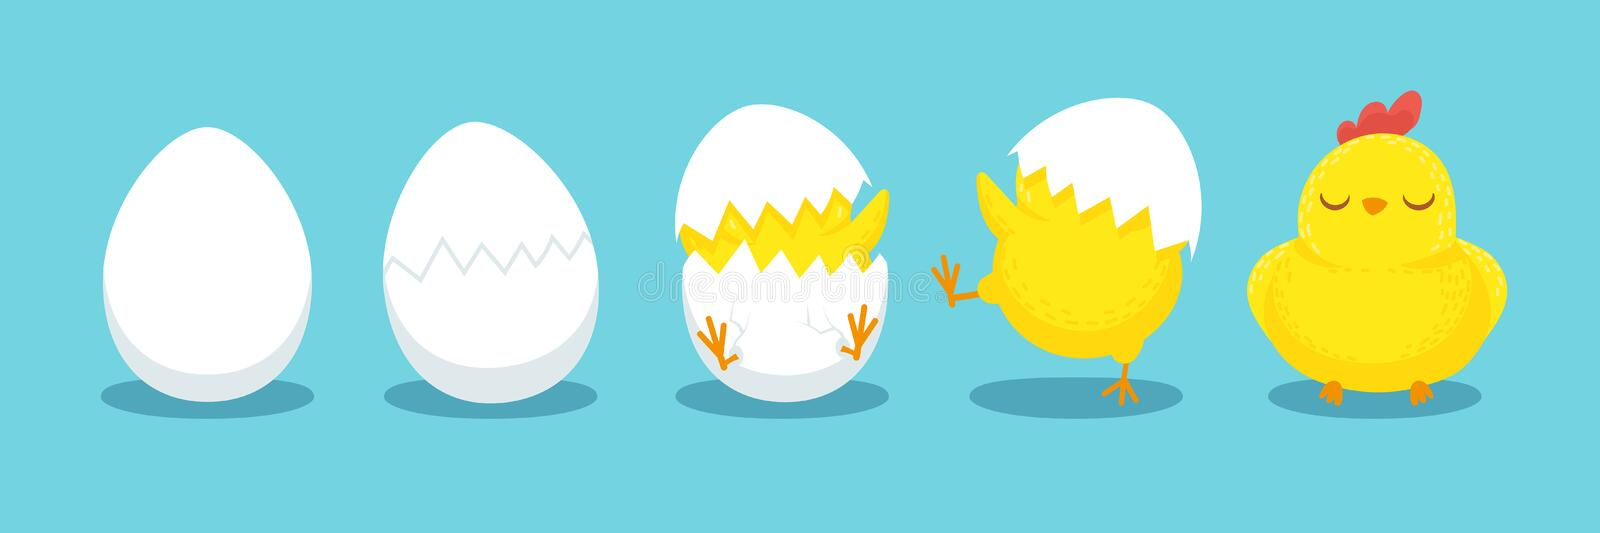 Chicken hatching. Cracked chick egg, hatch eggs and hatched easter chicks cartoon vector illustration. Chicken hatching. Cracked chick egg, hatch eggs and royalty free illustration